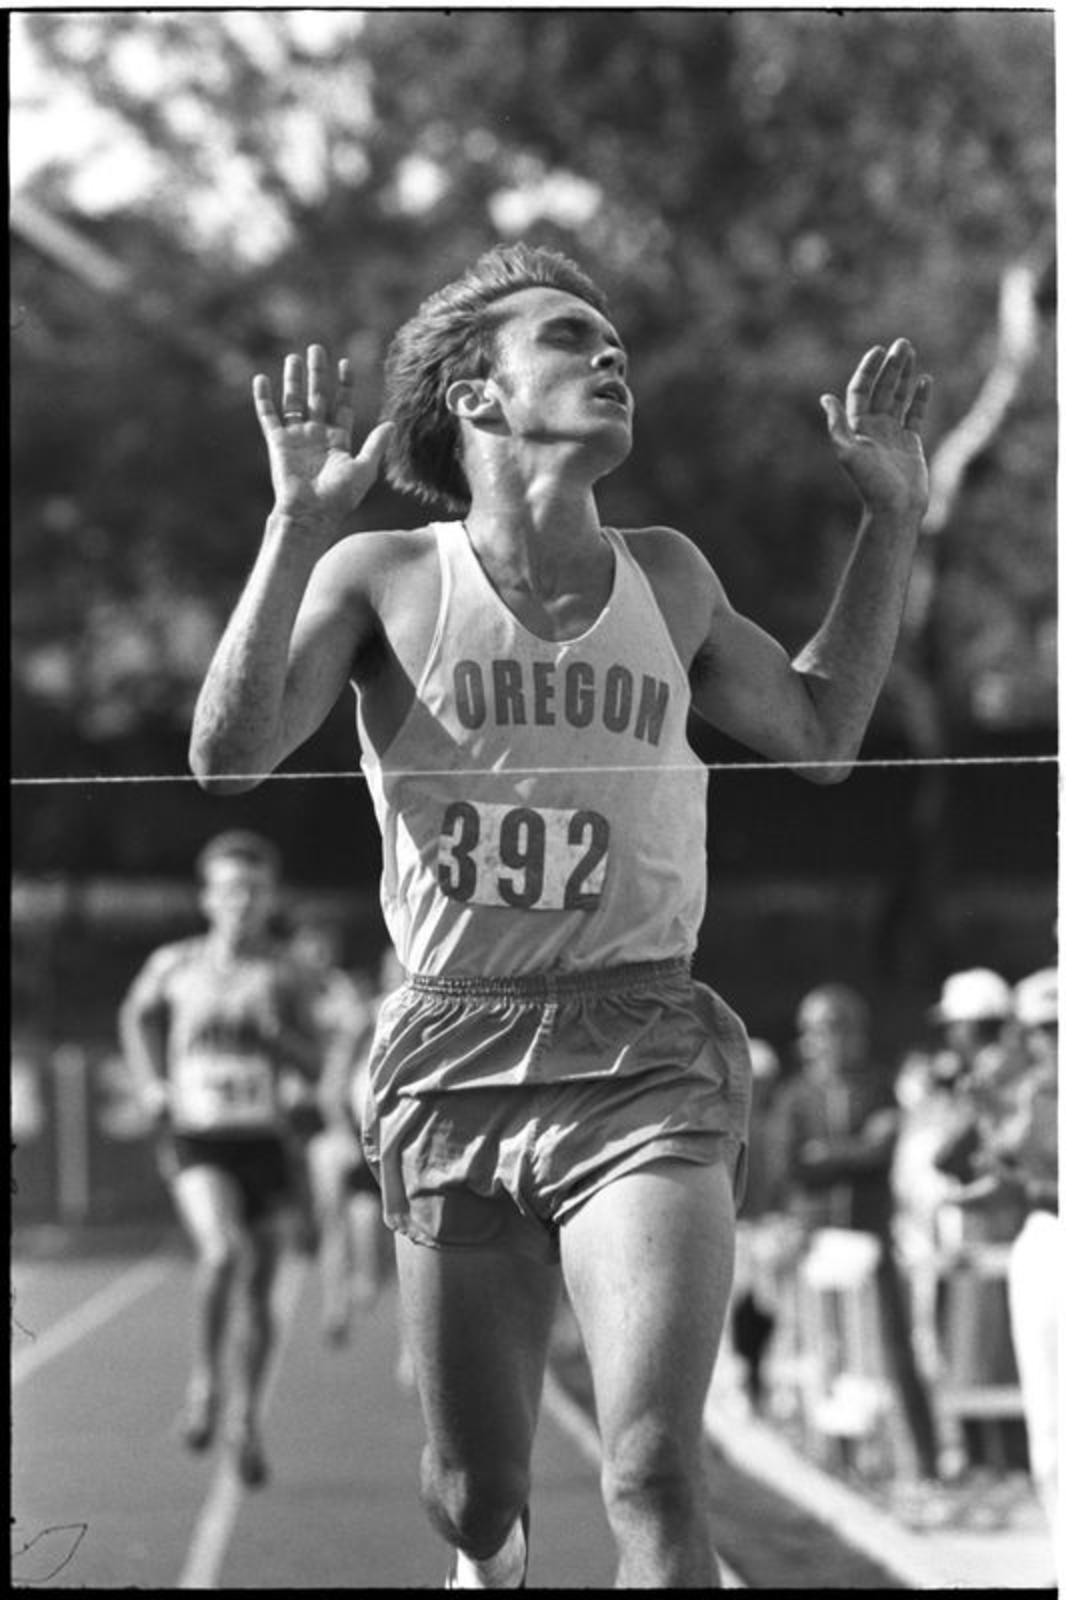 outlet store 14a57 a4936 40 Years of Prefontaine - Nike News